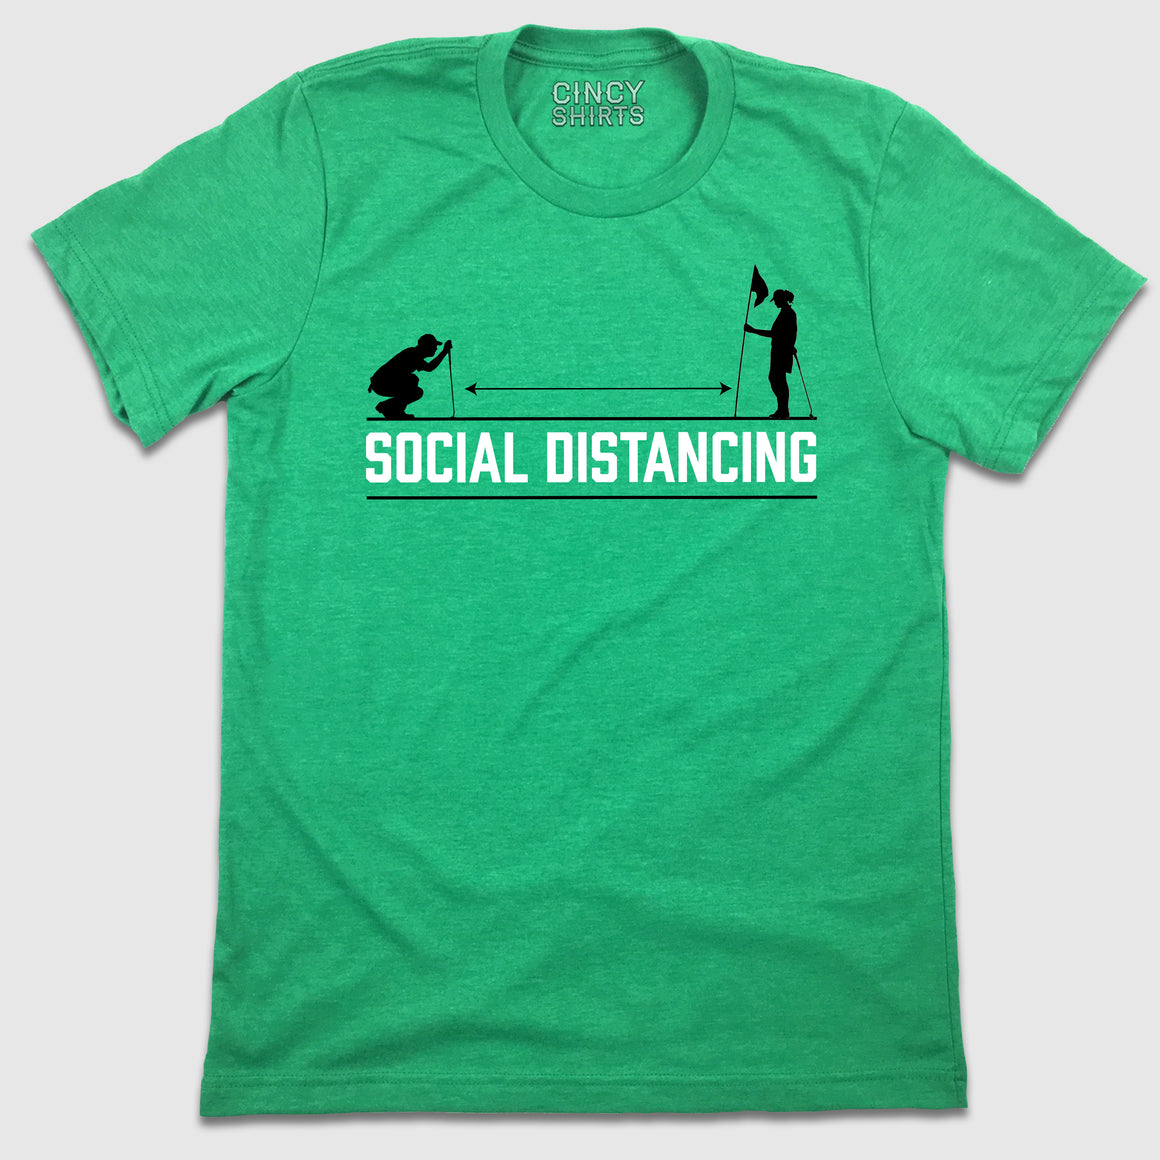 Social Distancing - Golf - Cincy Shirts